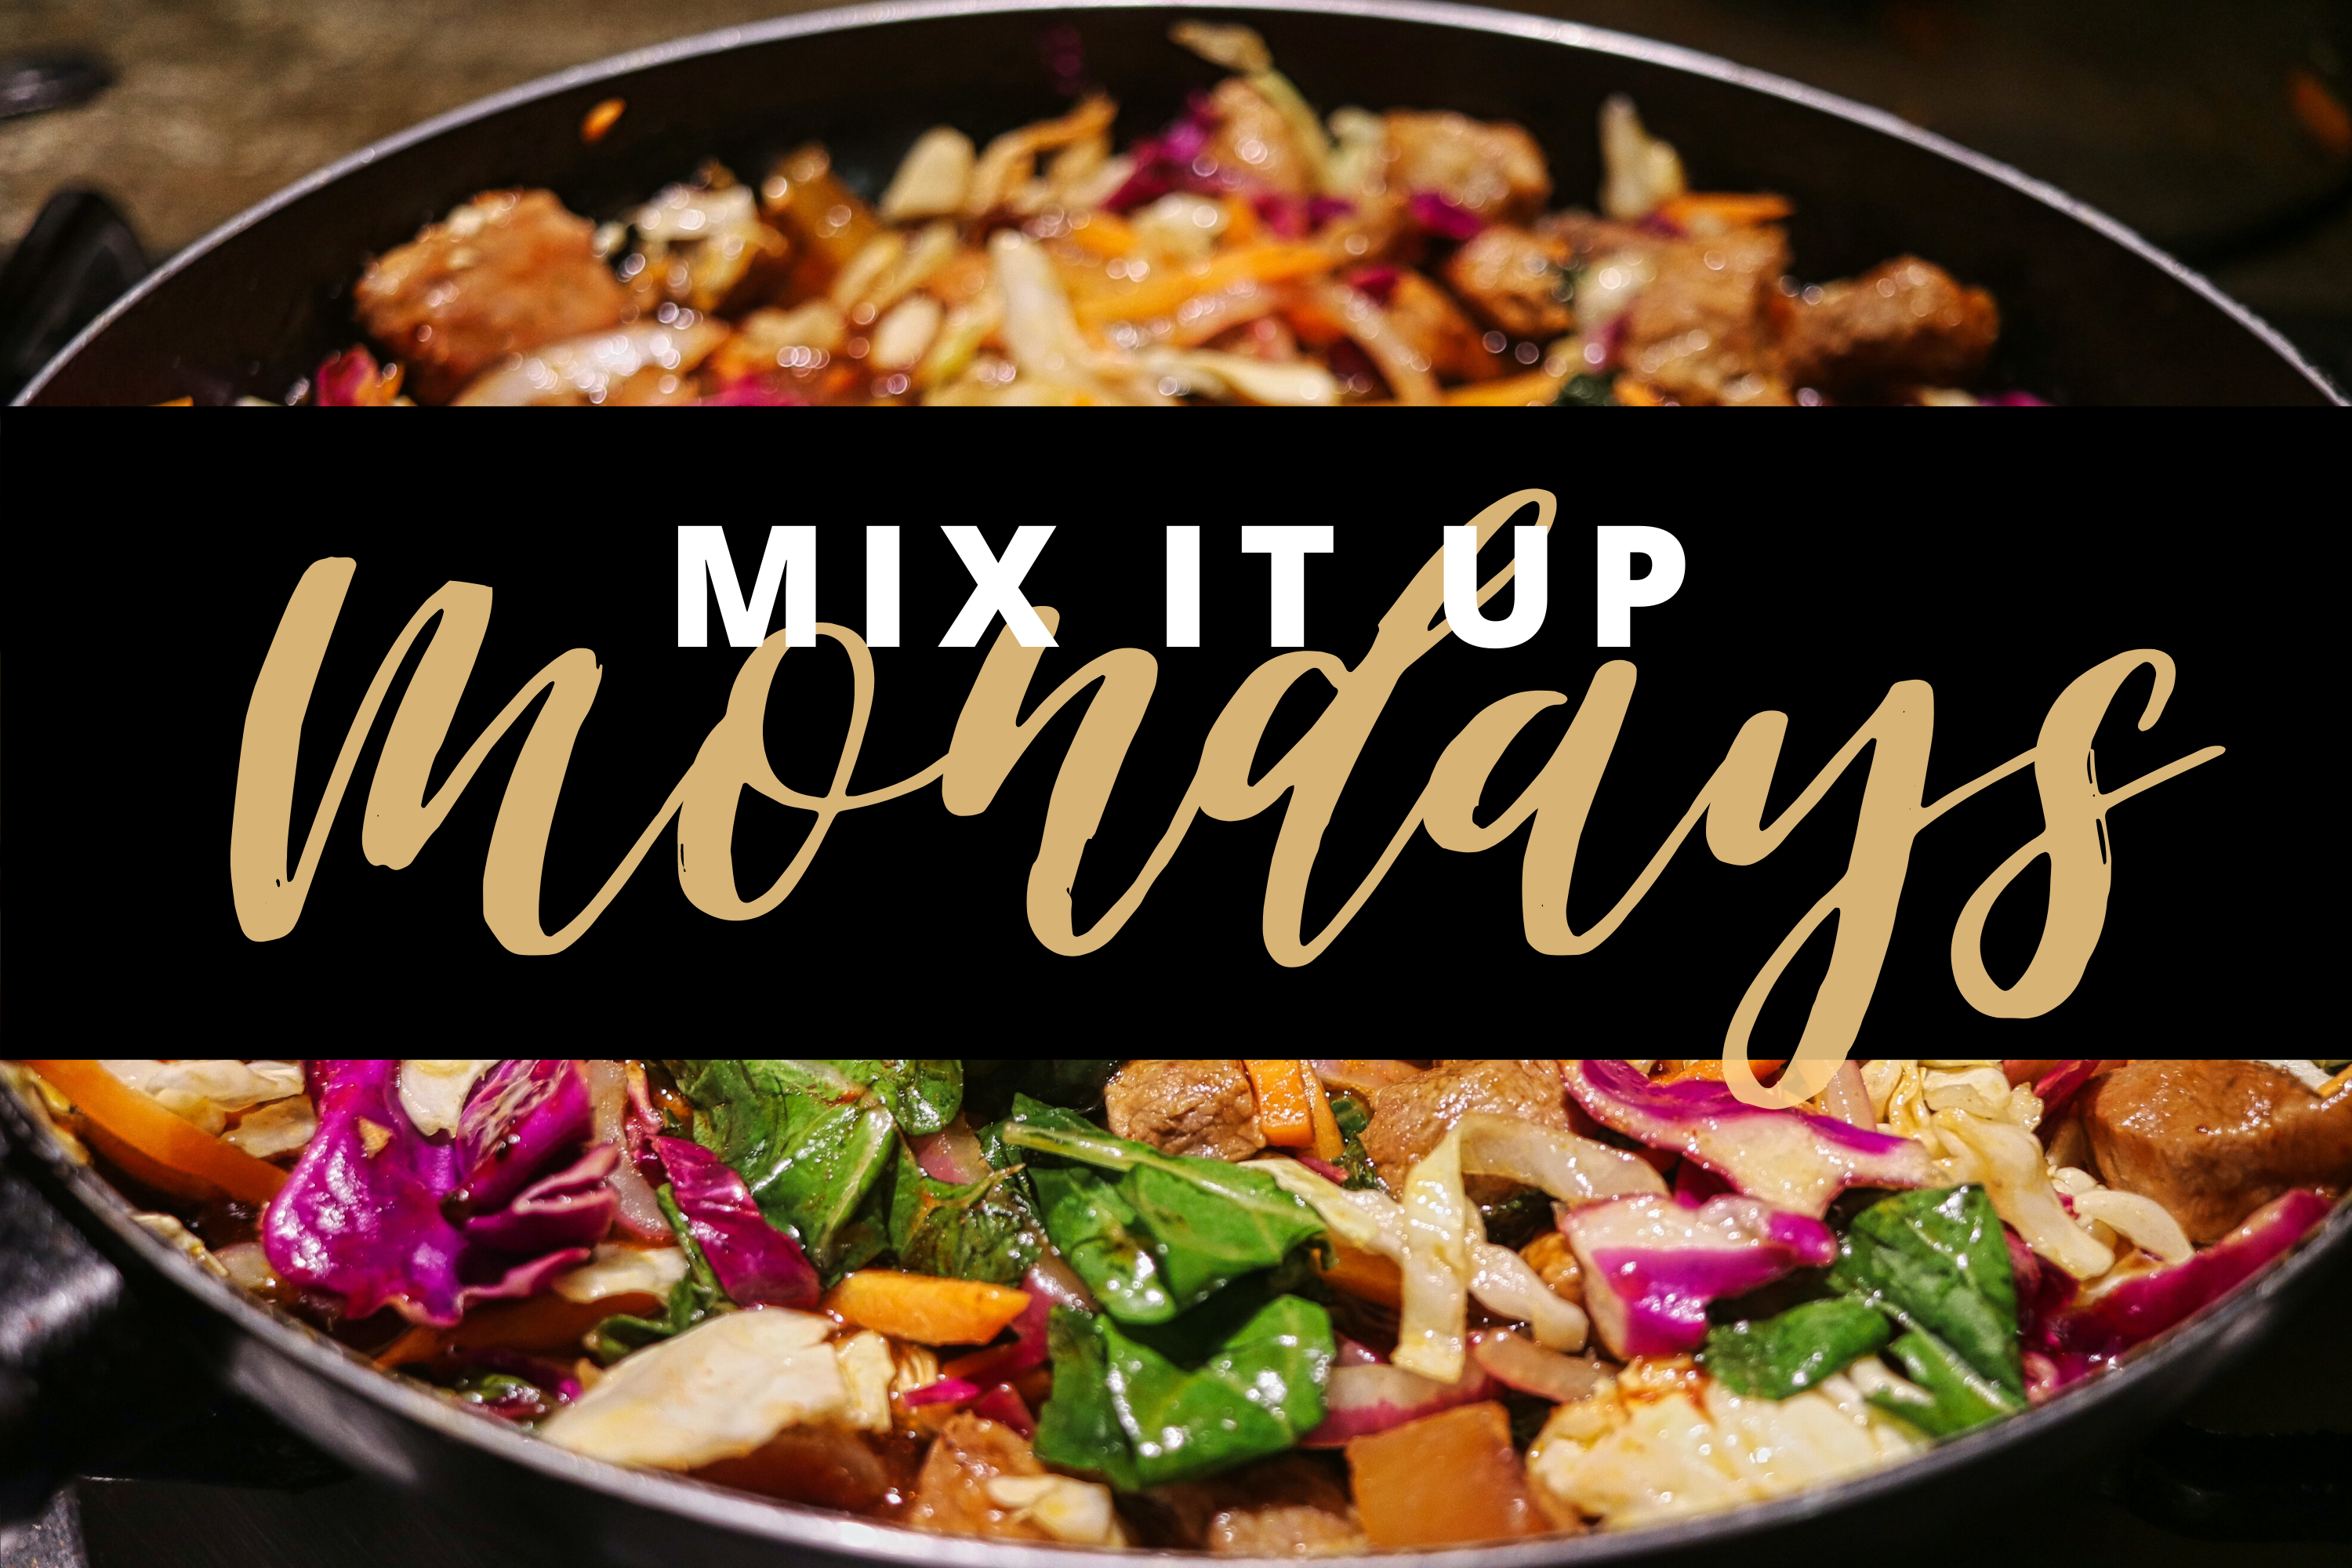 Mix It Up Mondays